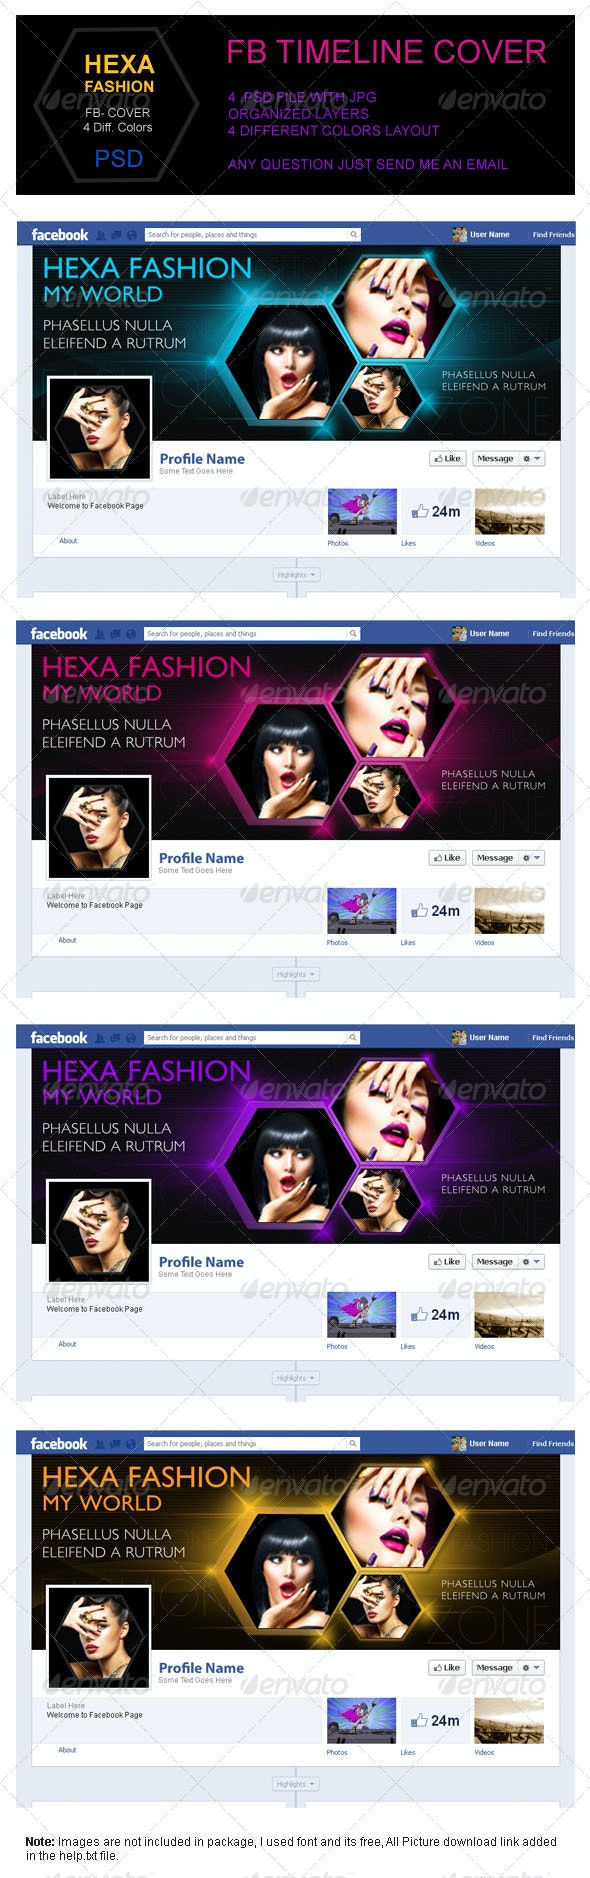 Hexa Fashion FB Timeline Cover - Facebook Timeline Covers Social Media